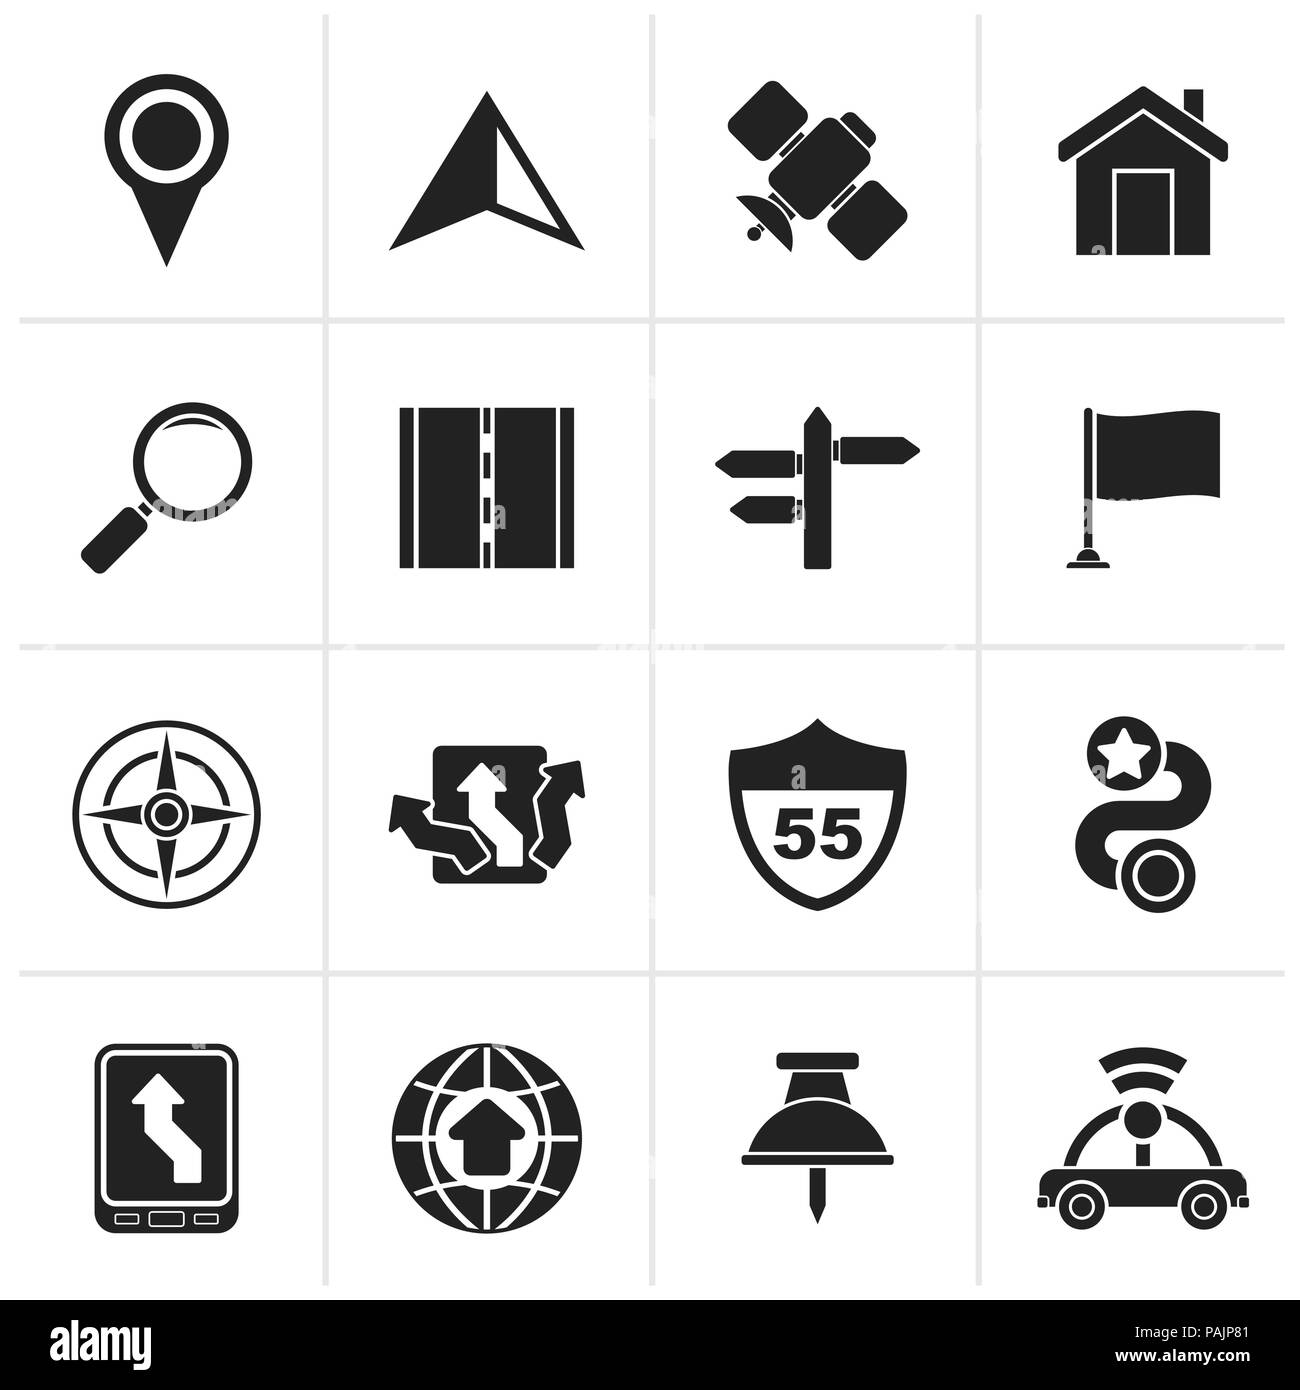 Black Gps, navigation and road icons - vector icon set - Stock Image